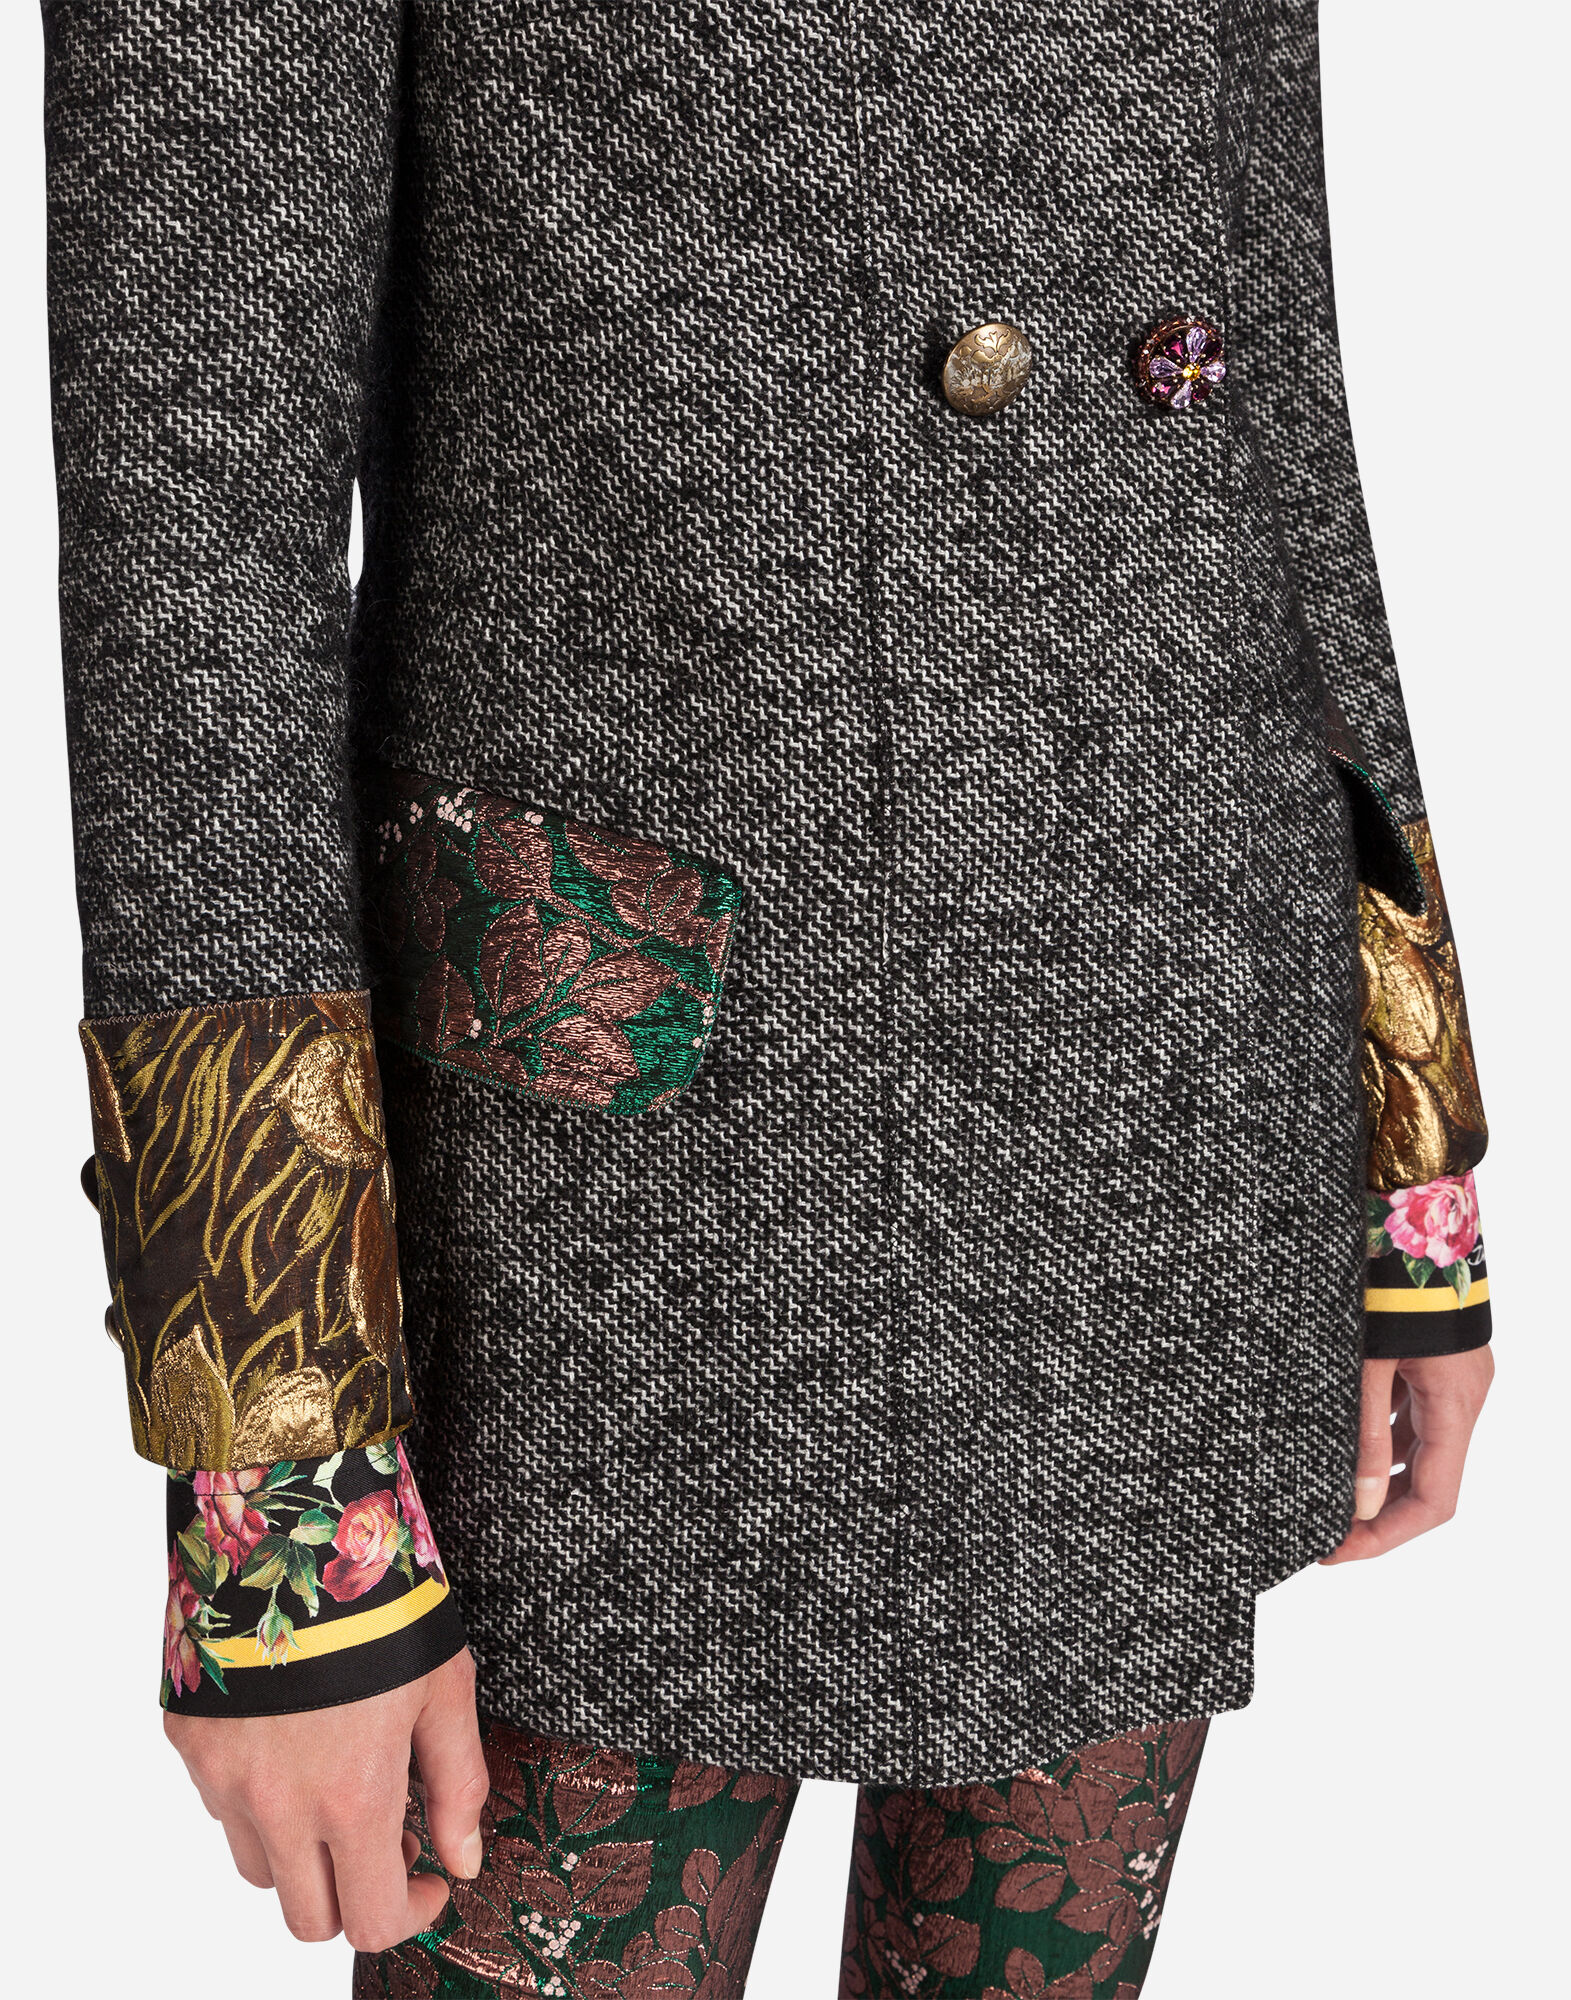 DOUBLE-BREASTED PEACOAT WITH BEJEWELED DETAILS